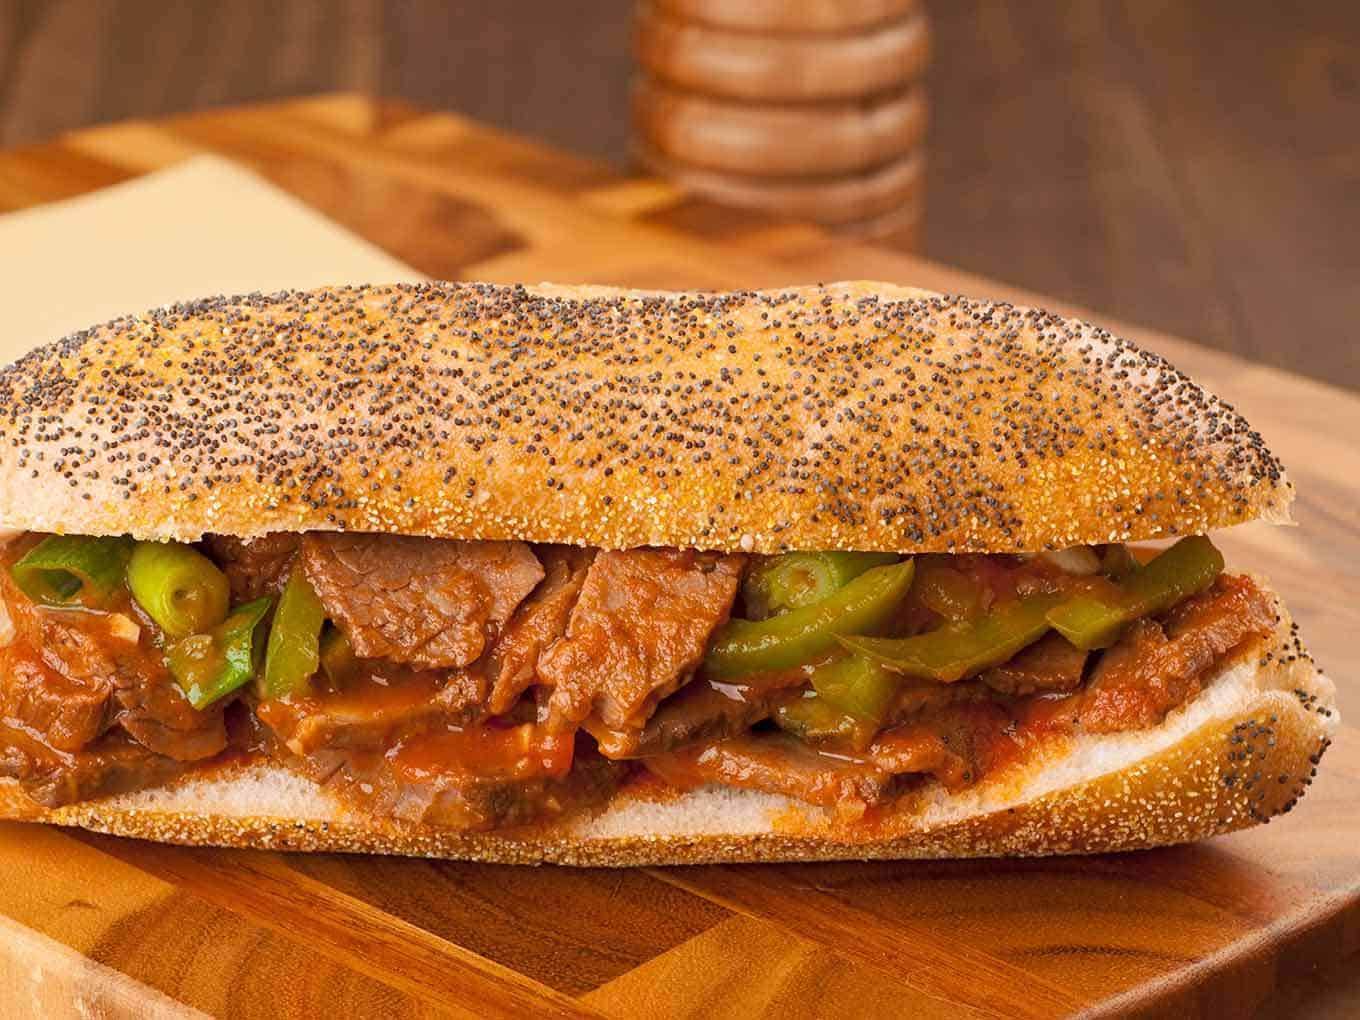 Sandwich of sliced brisket, sautéed green peppers, scallions and barbecue sauce on a poppy seed hoagie roll